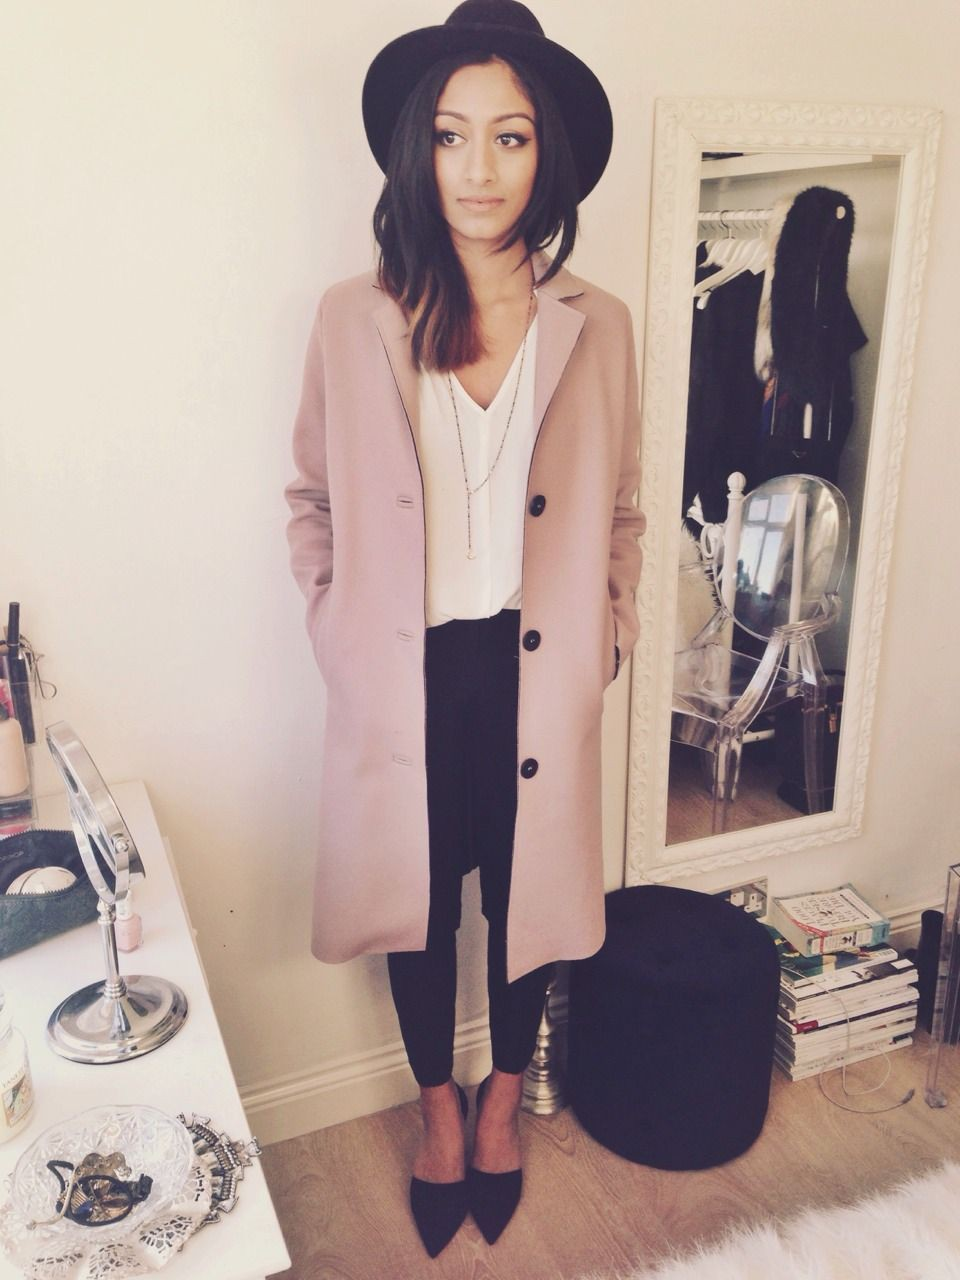 Pastel pink and black outfit